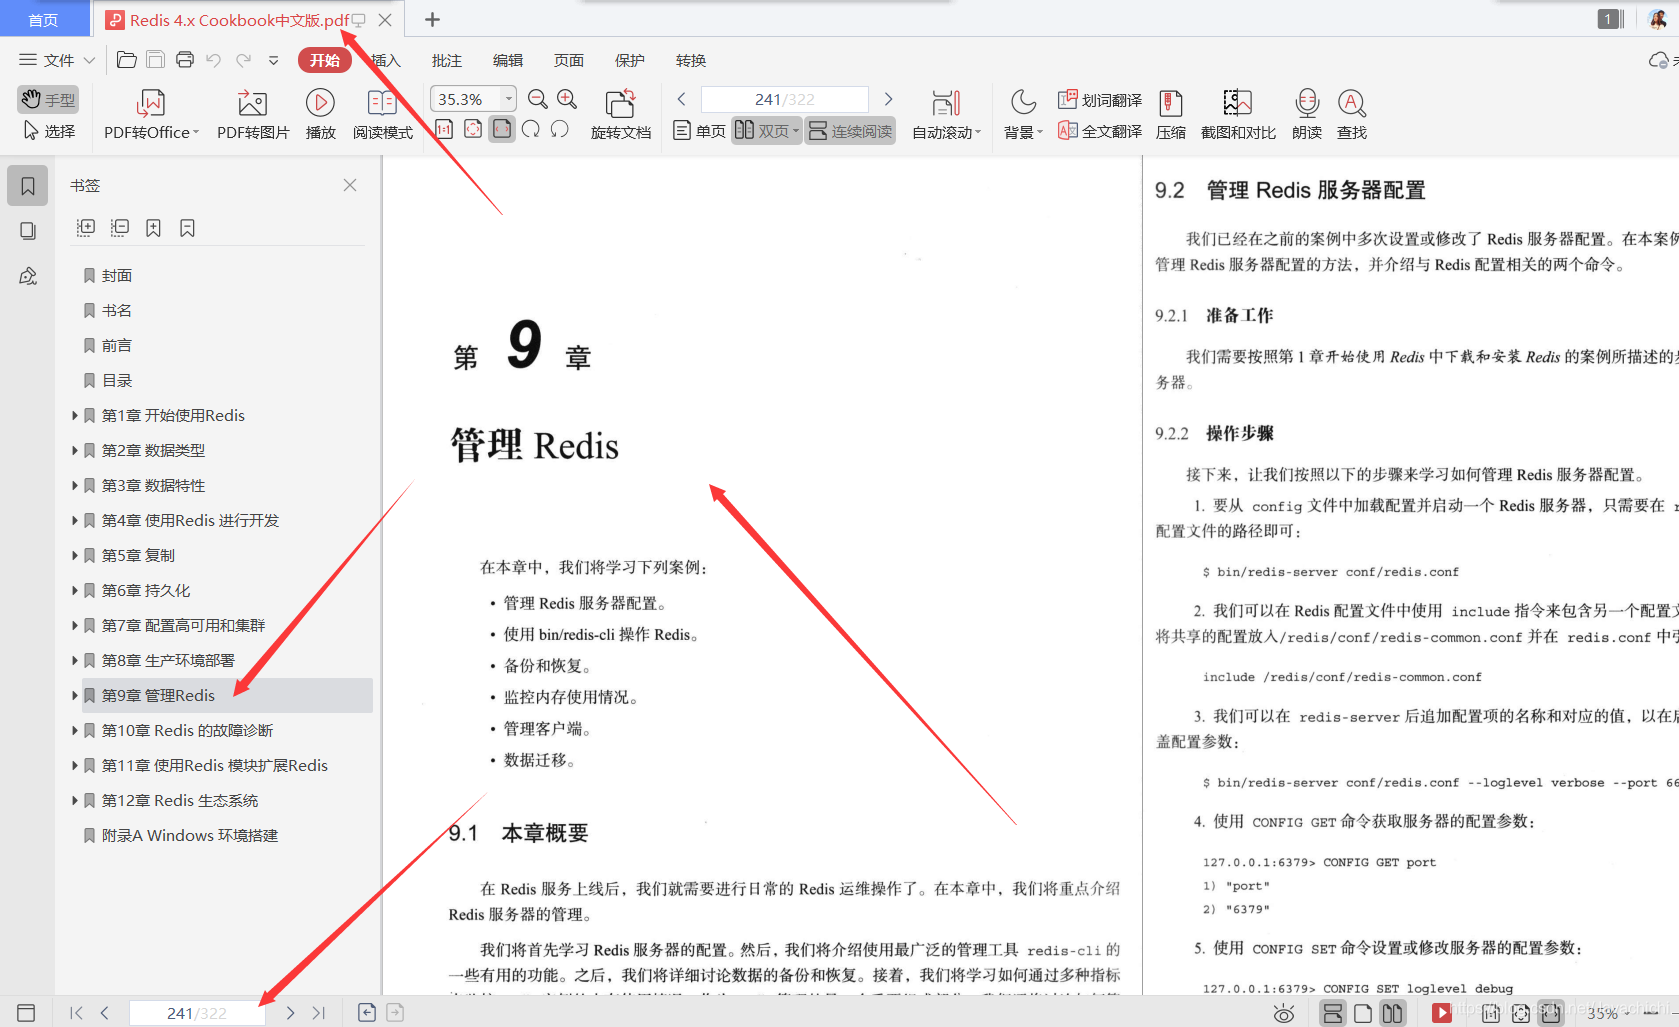 After three months, Huawei's 18-level experts recommend 322 pages of Redis4.xCookbook, and enter Huawei to set 16+